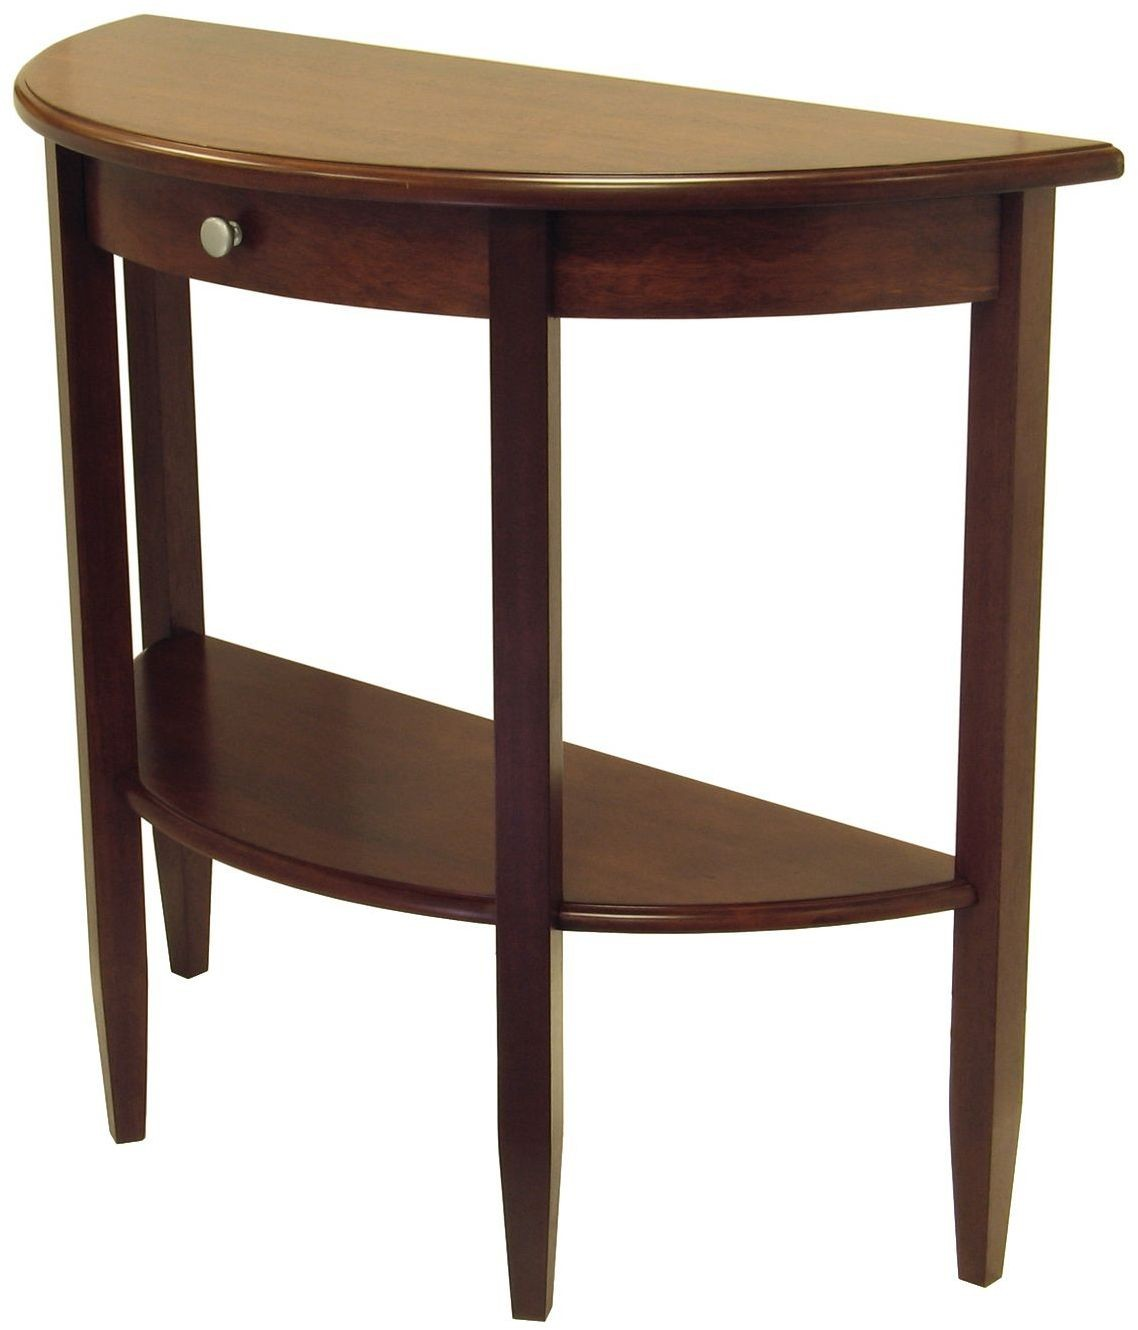 5 Console Table ~ Concord half moon drawer hall console table from